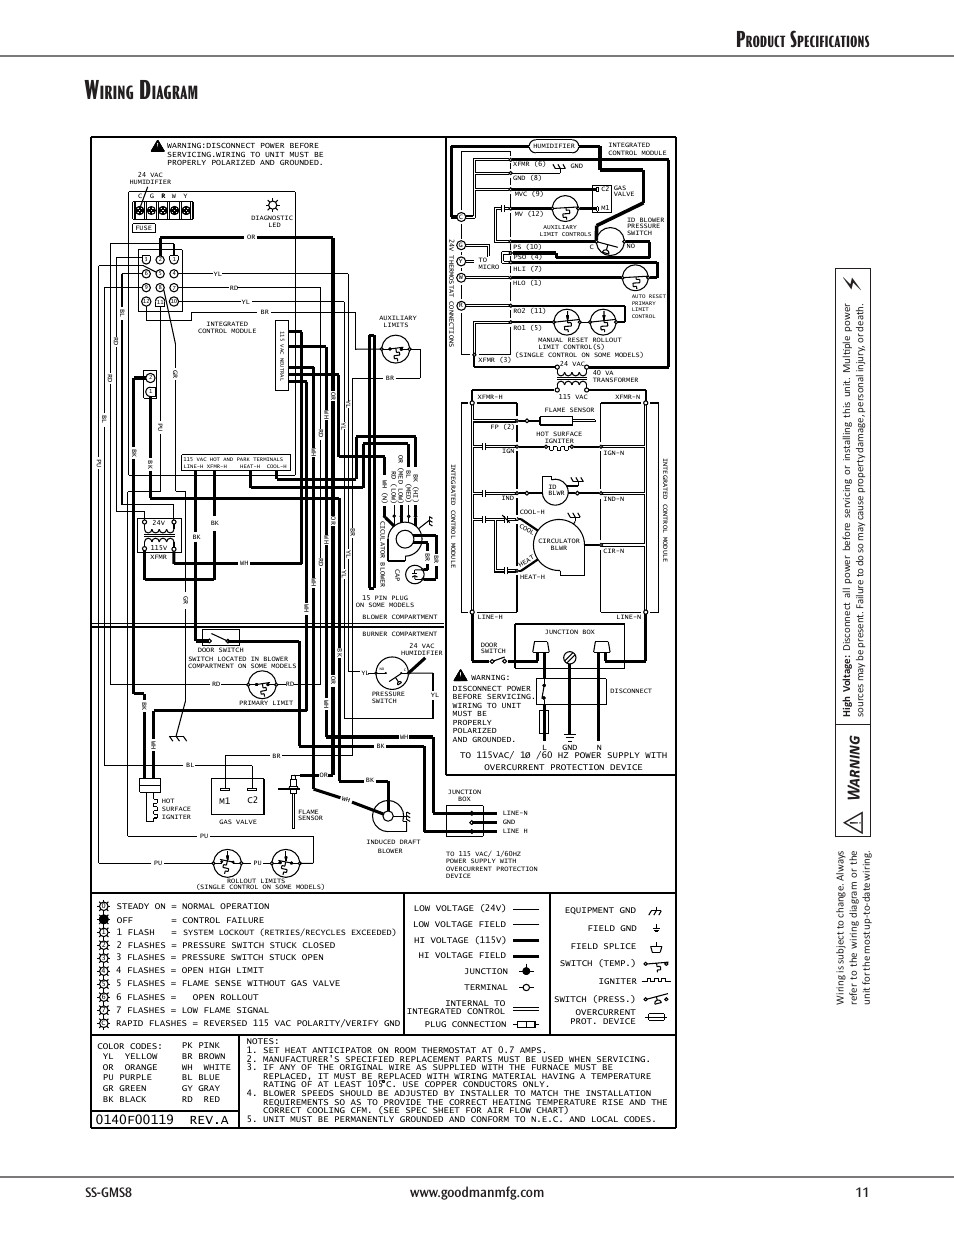 [CF_7816] Goodman Air Handler Wiring Diagrams File Name